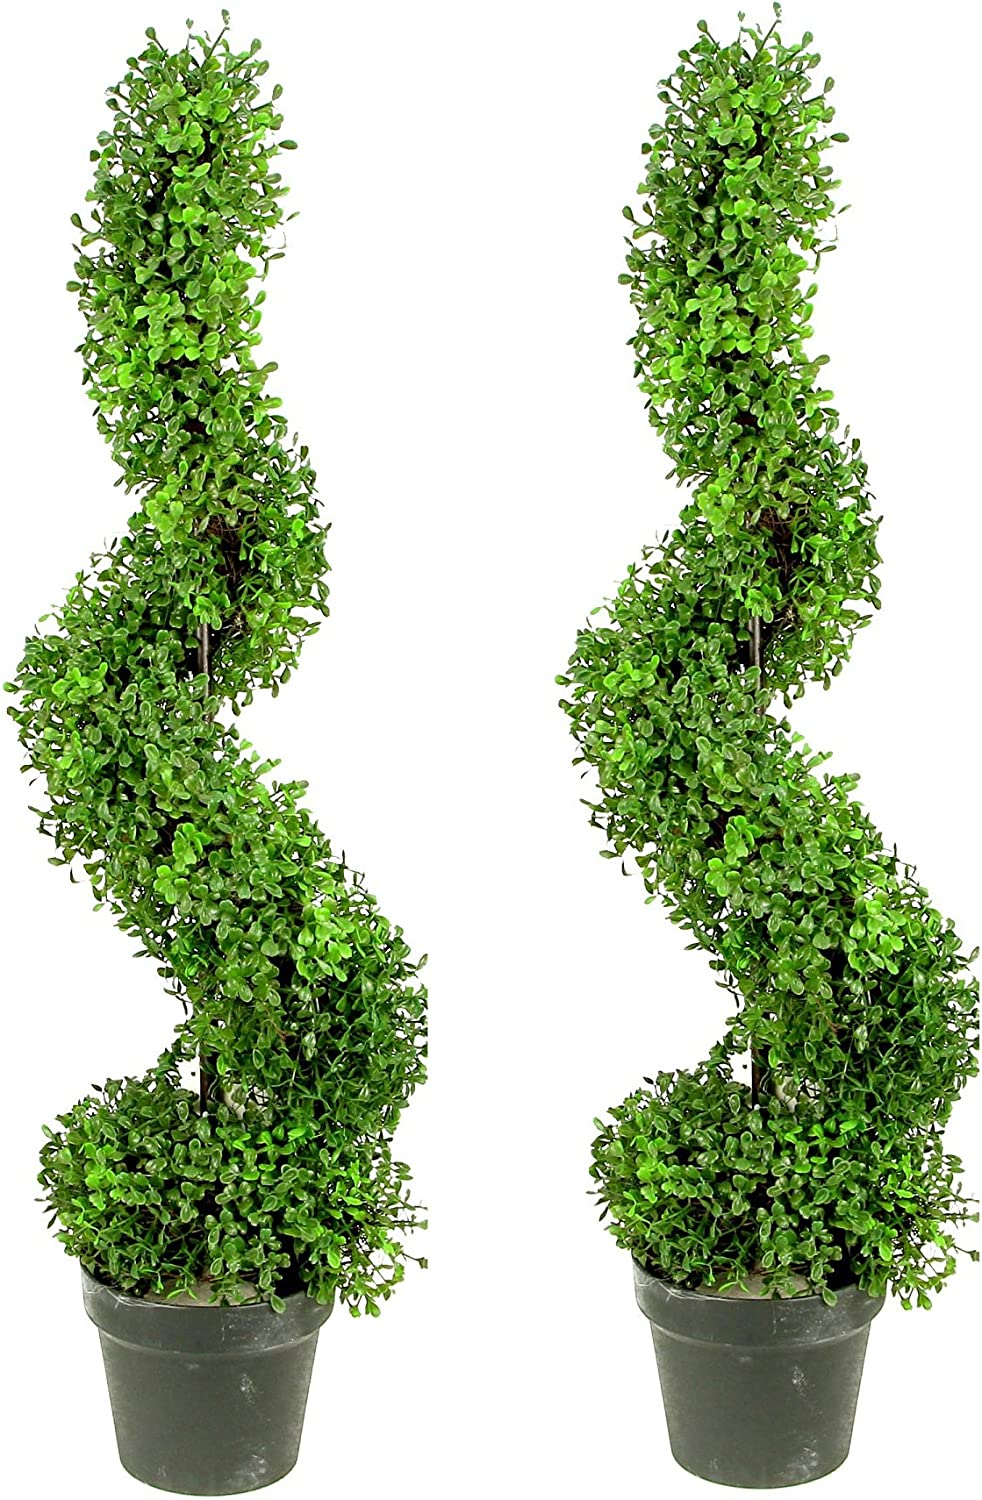 Admired by Nature 2 x 3' Aritificial Boxwood Leave Spiral Topiary Plant Tree in Plastic Pot, Green Two-Tone